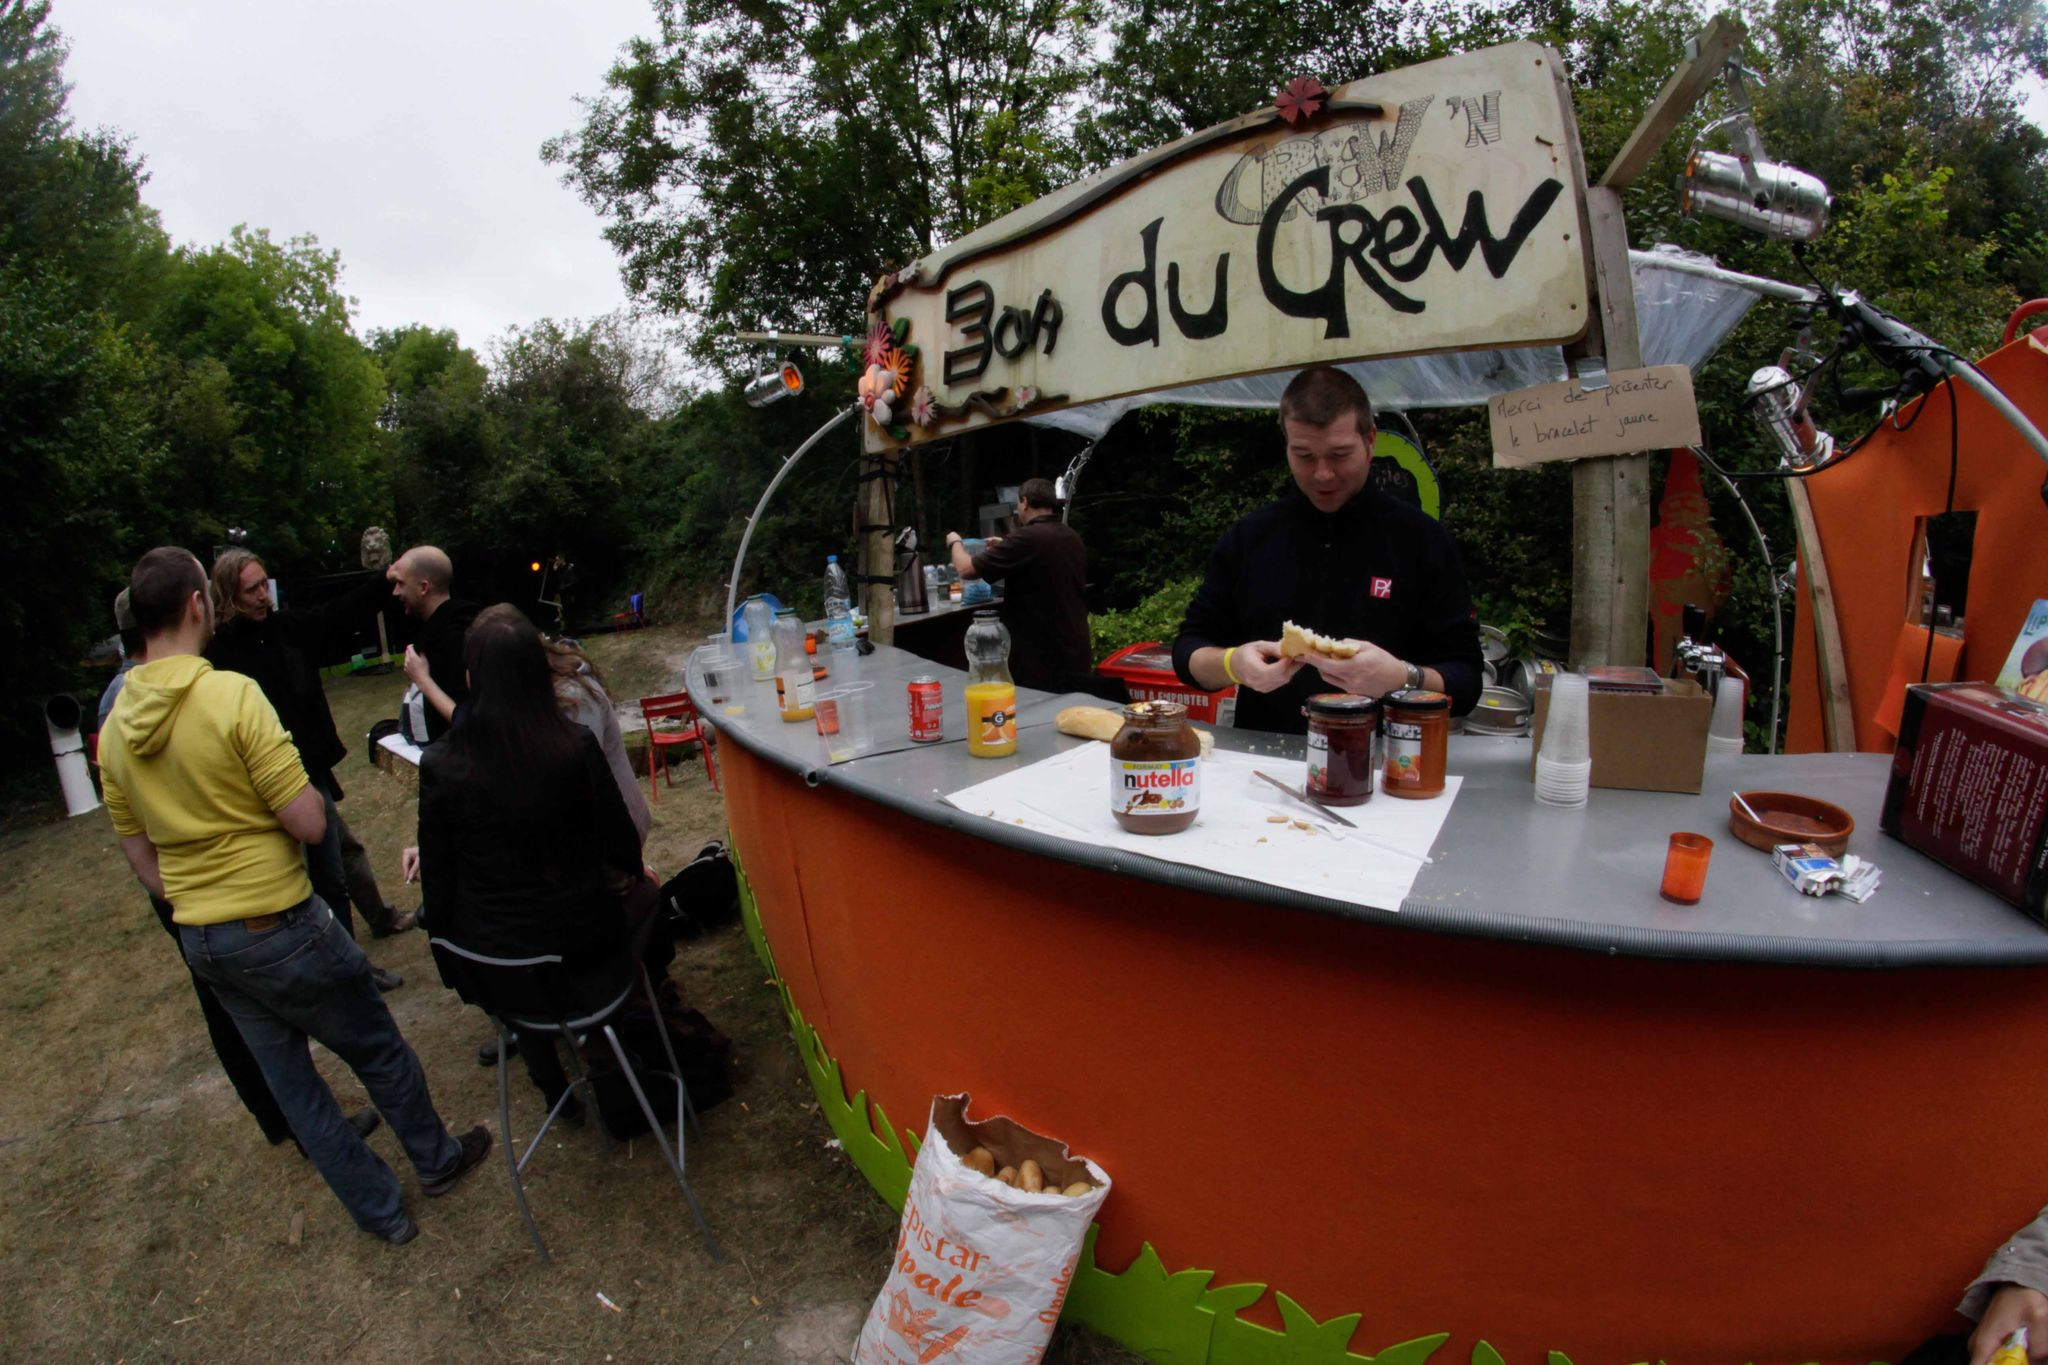 Ambiance-CrewnCrew-Vendhuile-2012-82